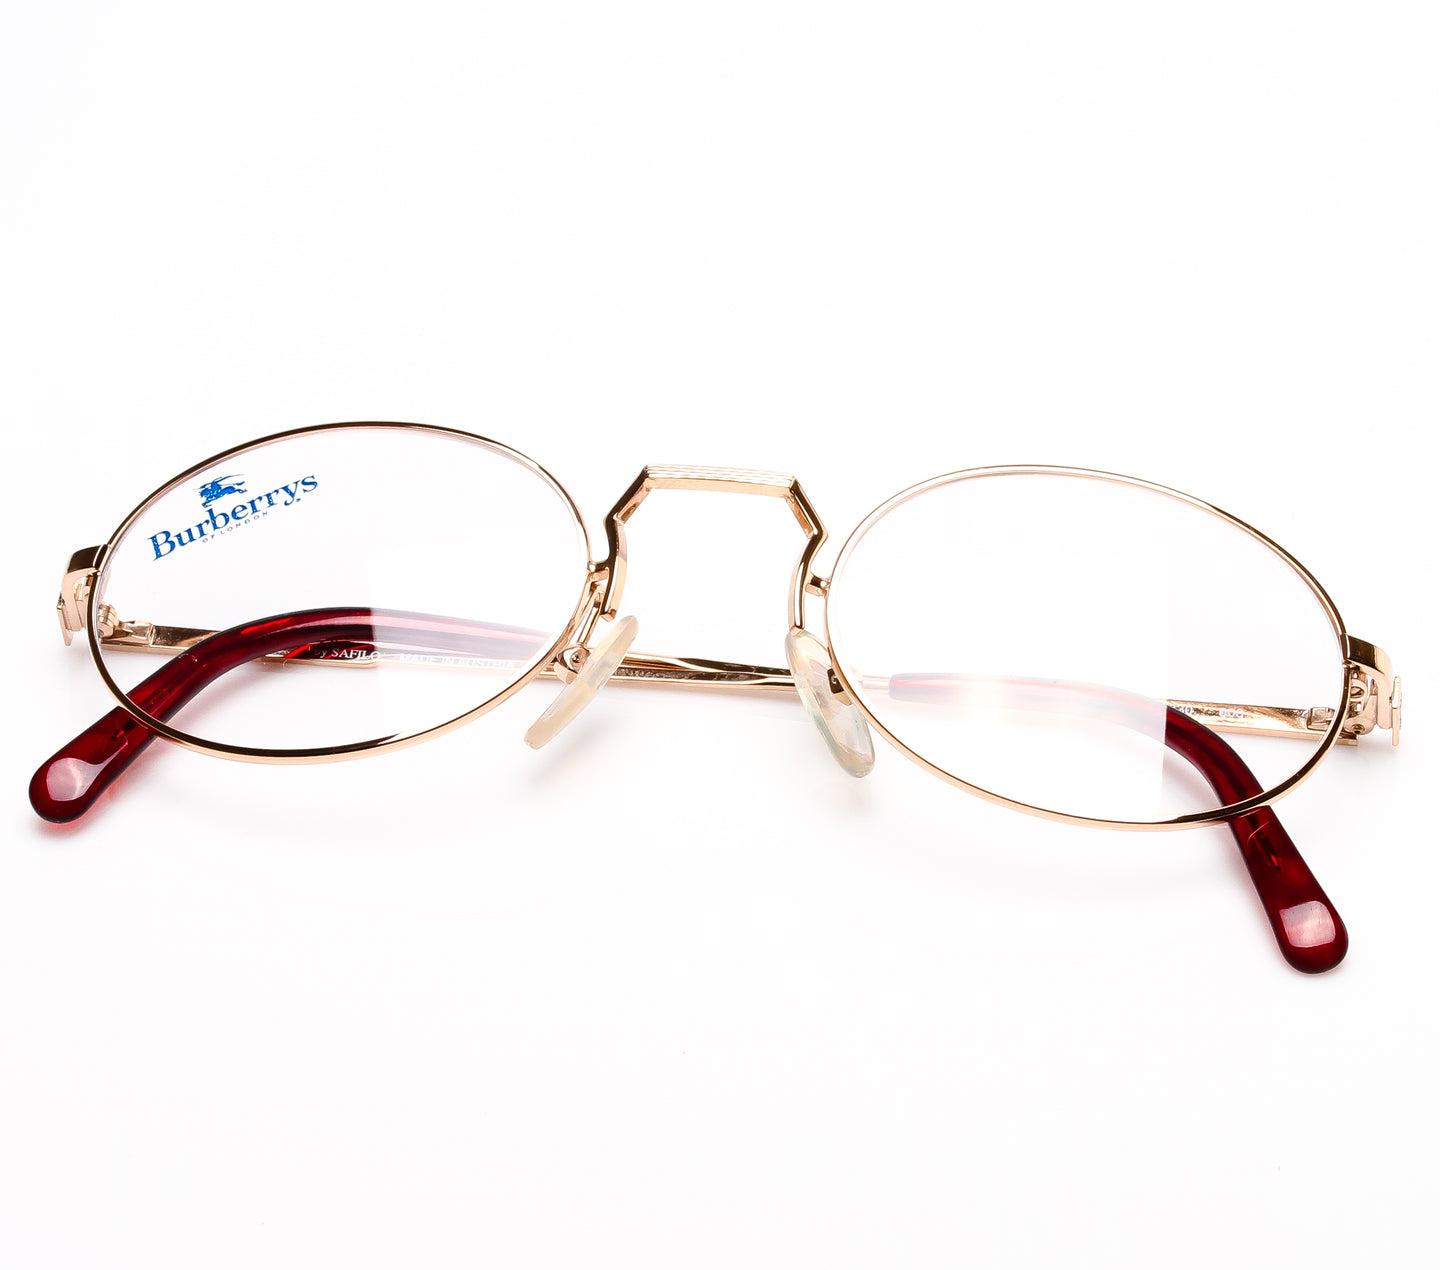 Burberry B 8830 000 (Clear Lens) Thumbnail